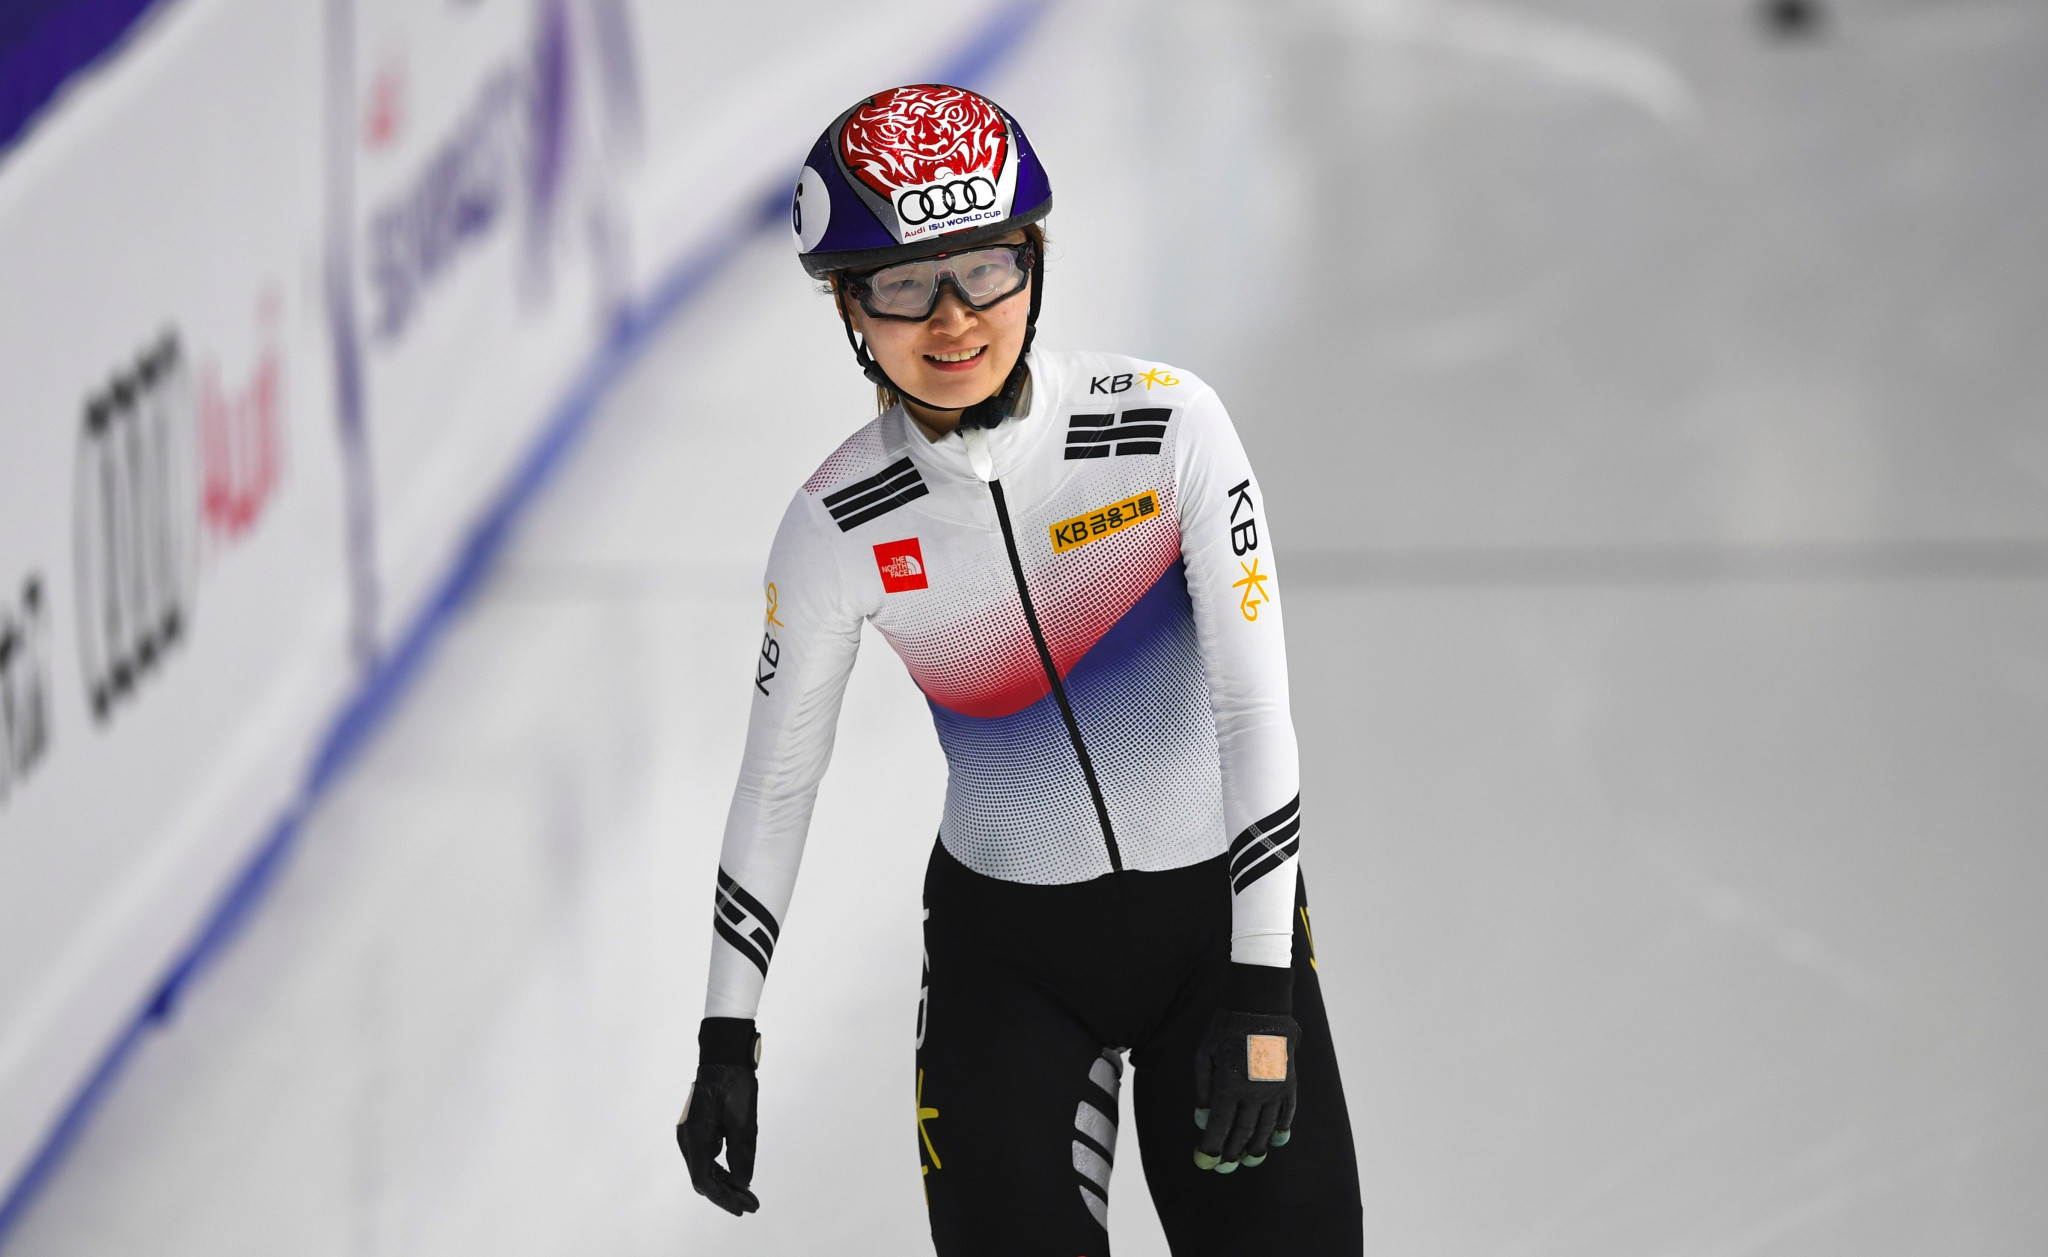 South Koreans lay down marker at Seoul ISU Short Track World Cup